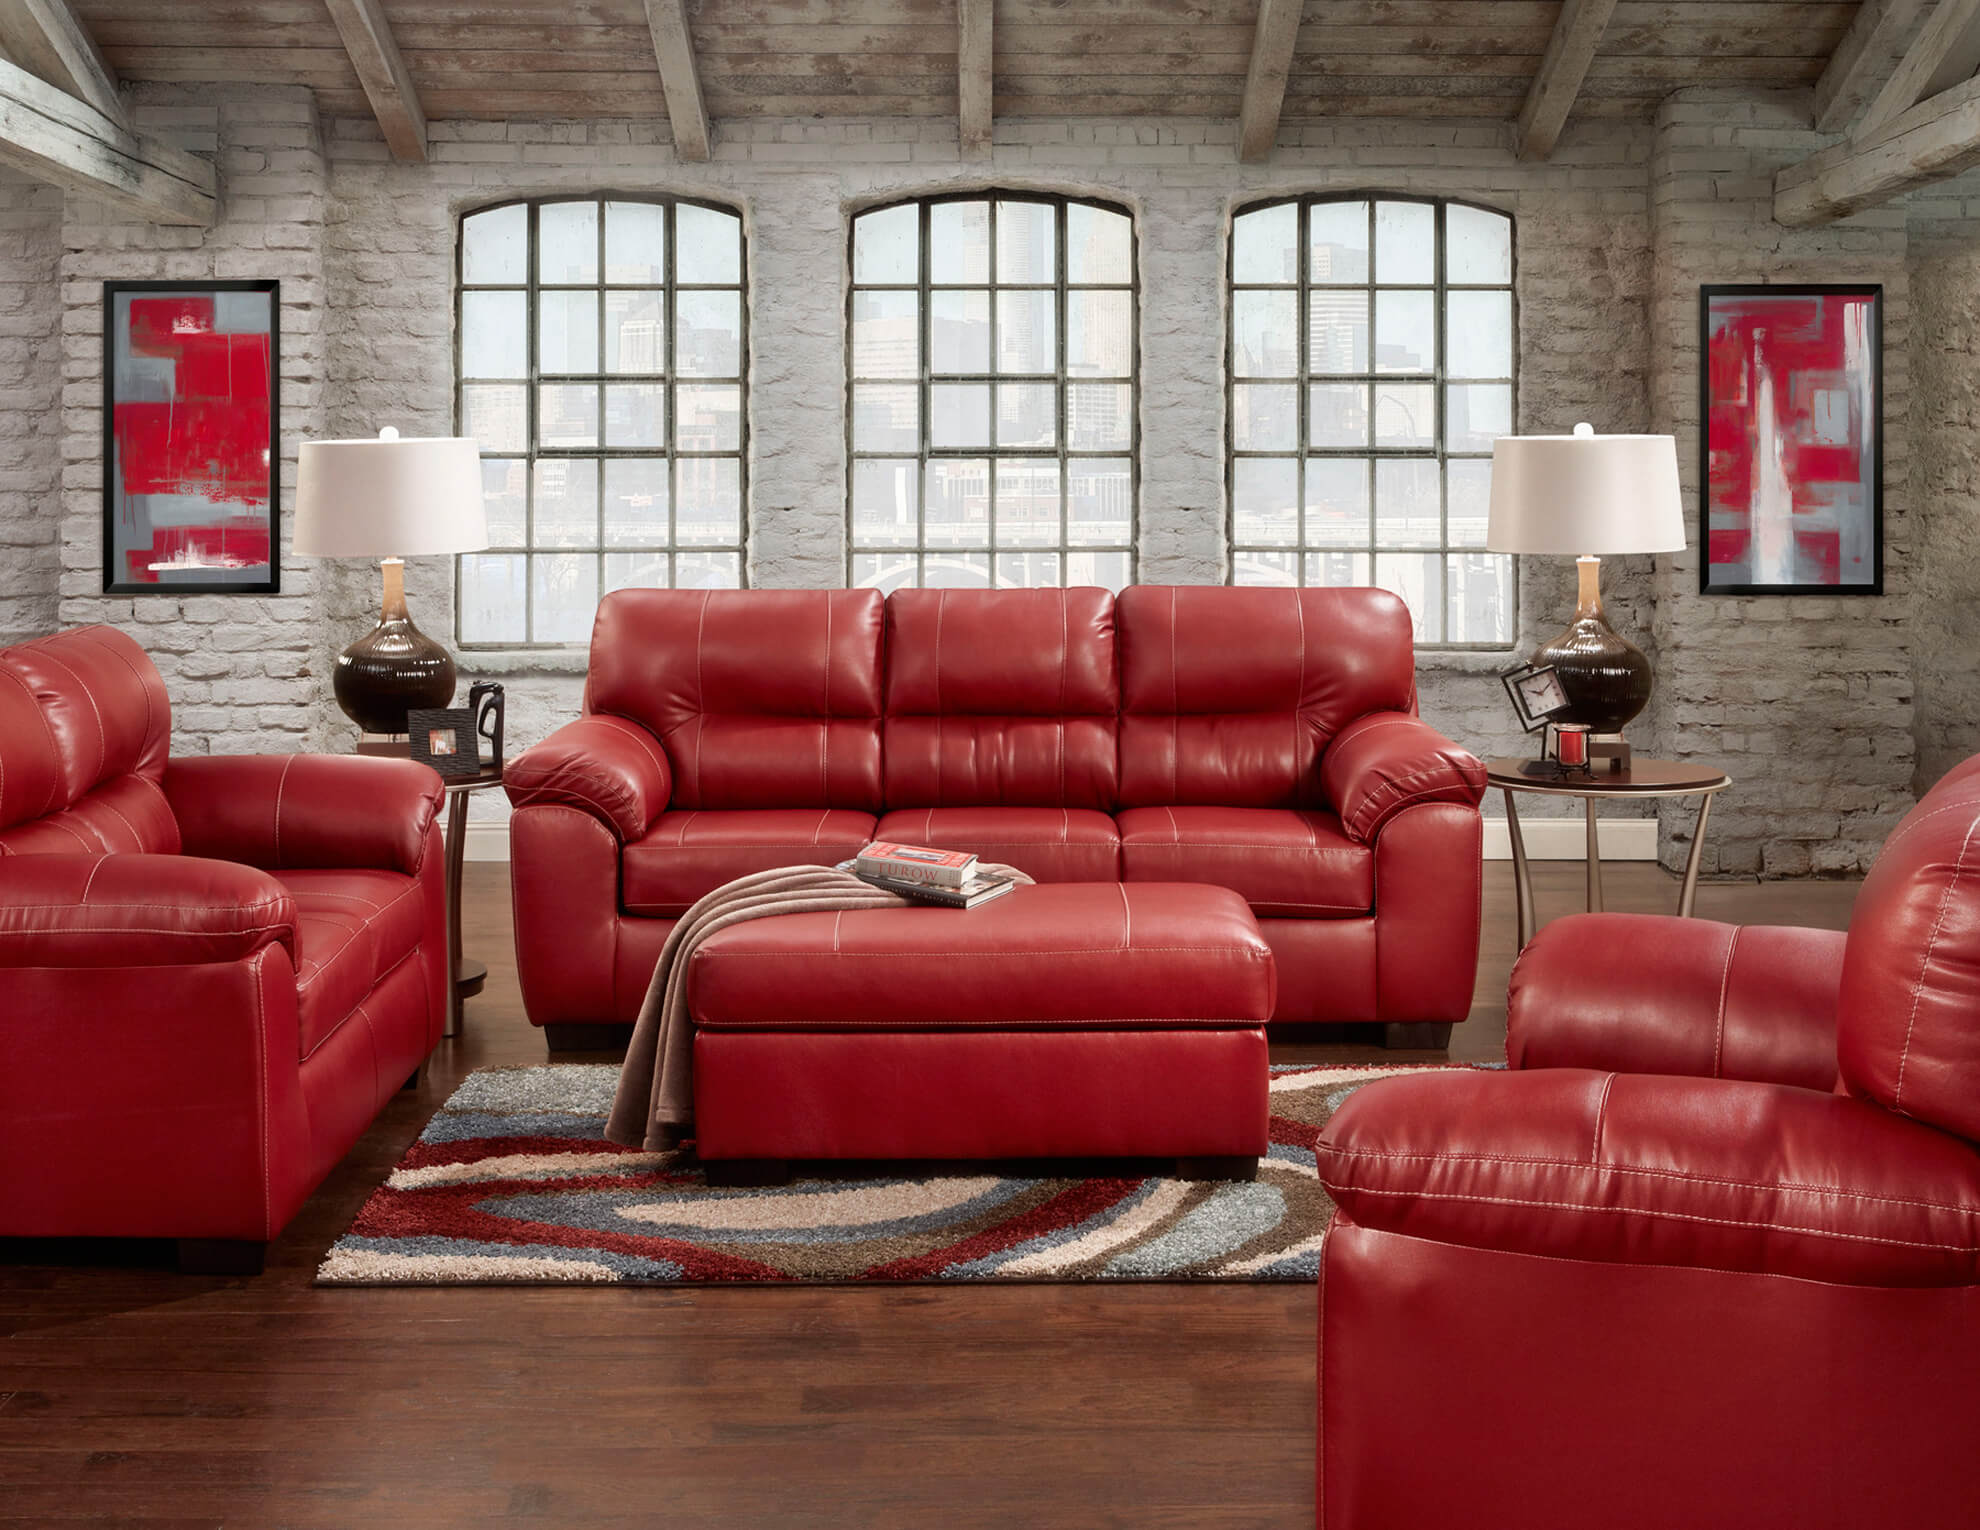 red leather living room furniture set sofa and loveseat leather living room sets 25963